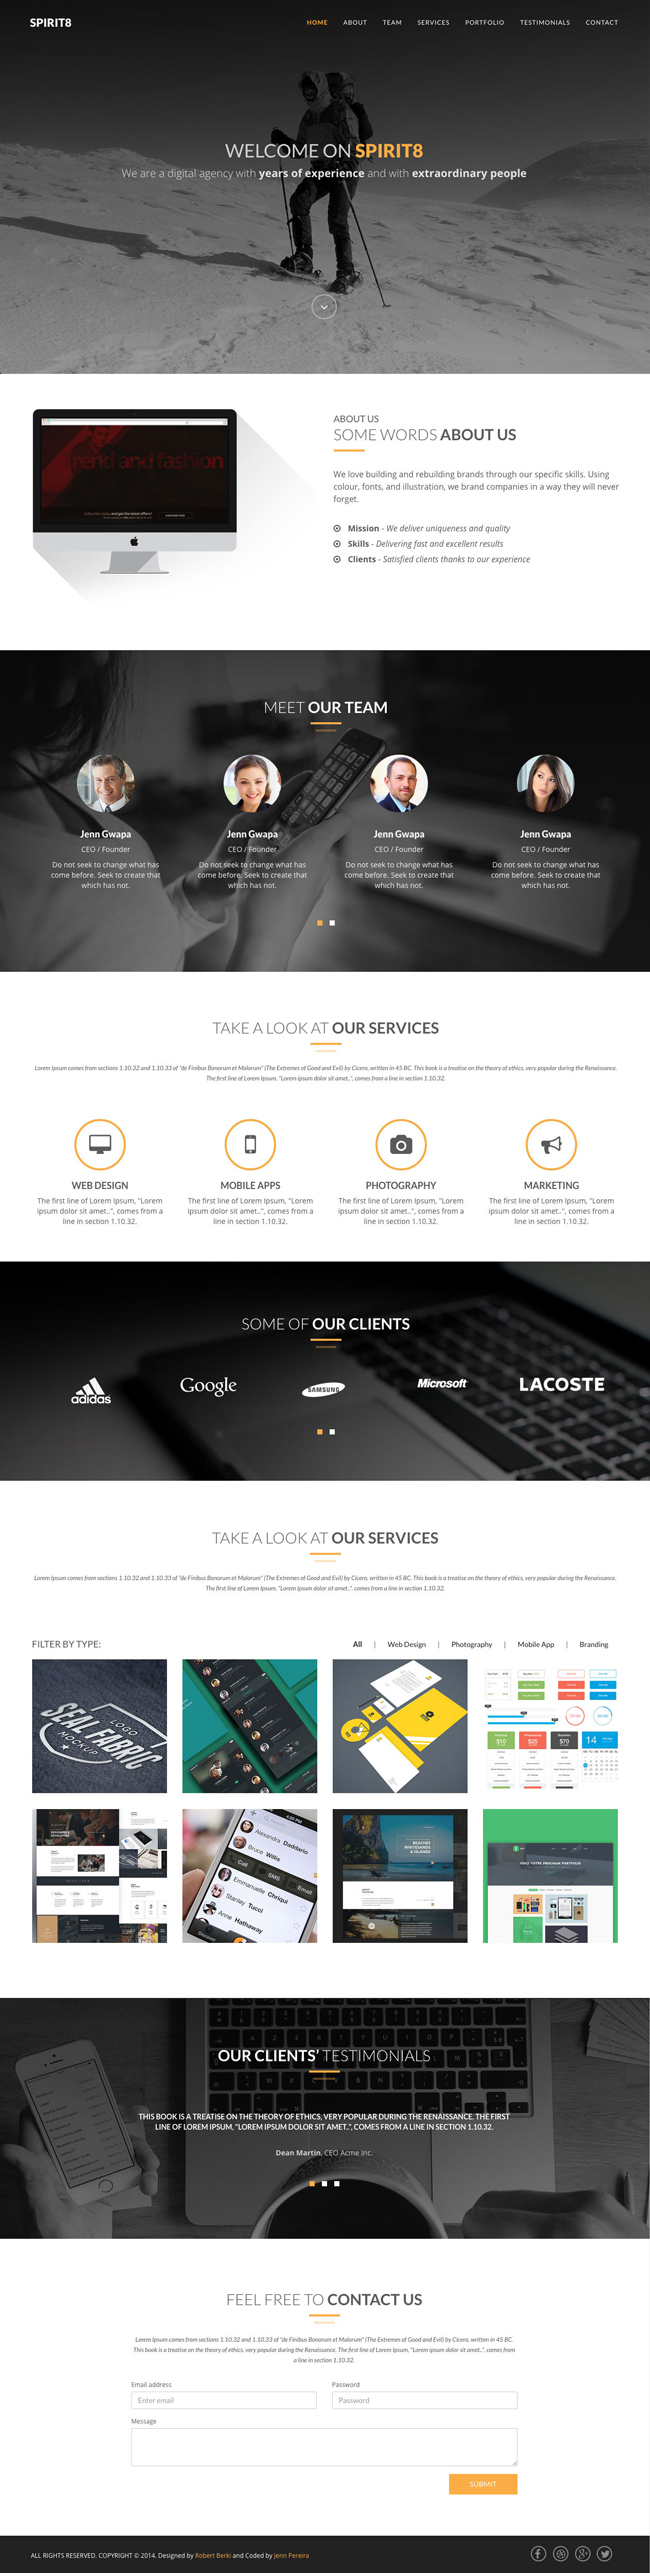 Free Download : Spirit8 – Bootstrap Based HTML Template (PSD ...